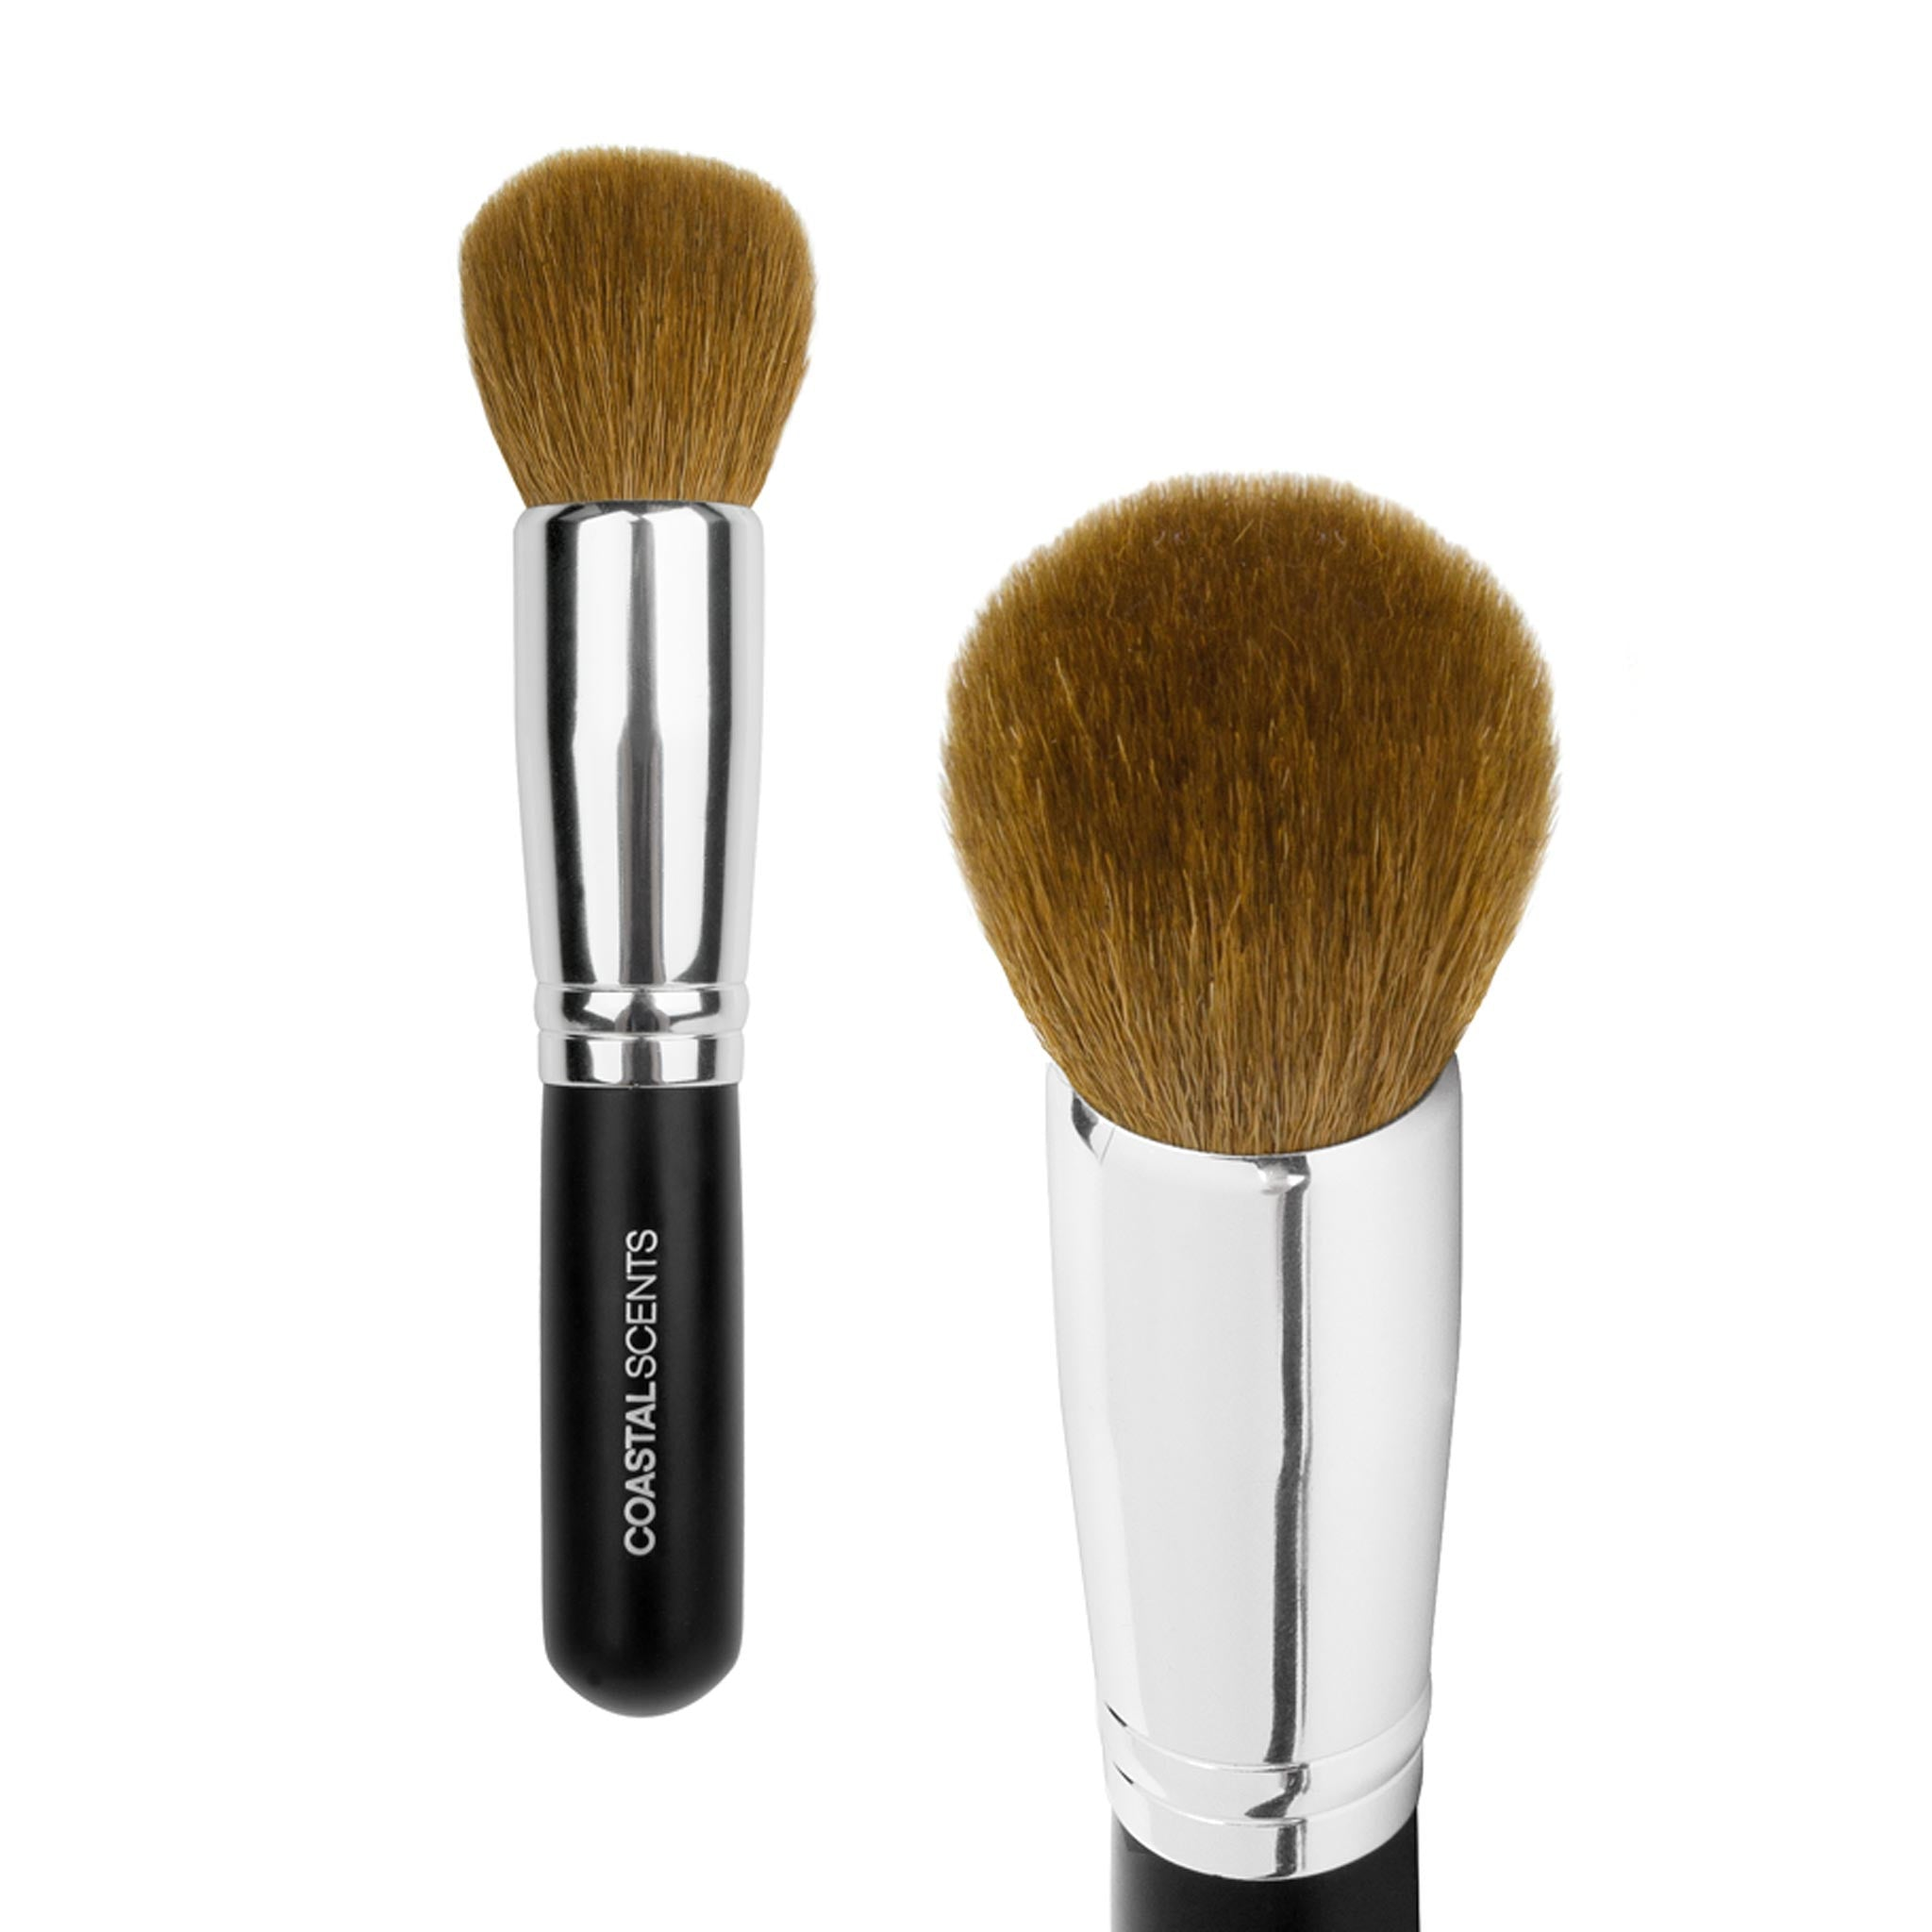 Kabuki Brush on a Stick